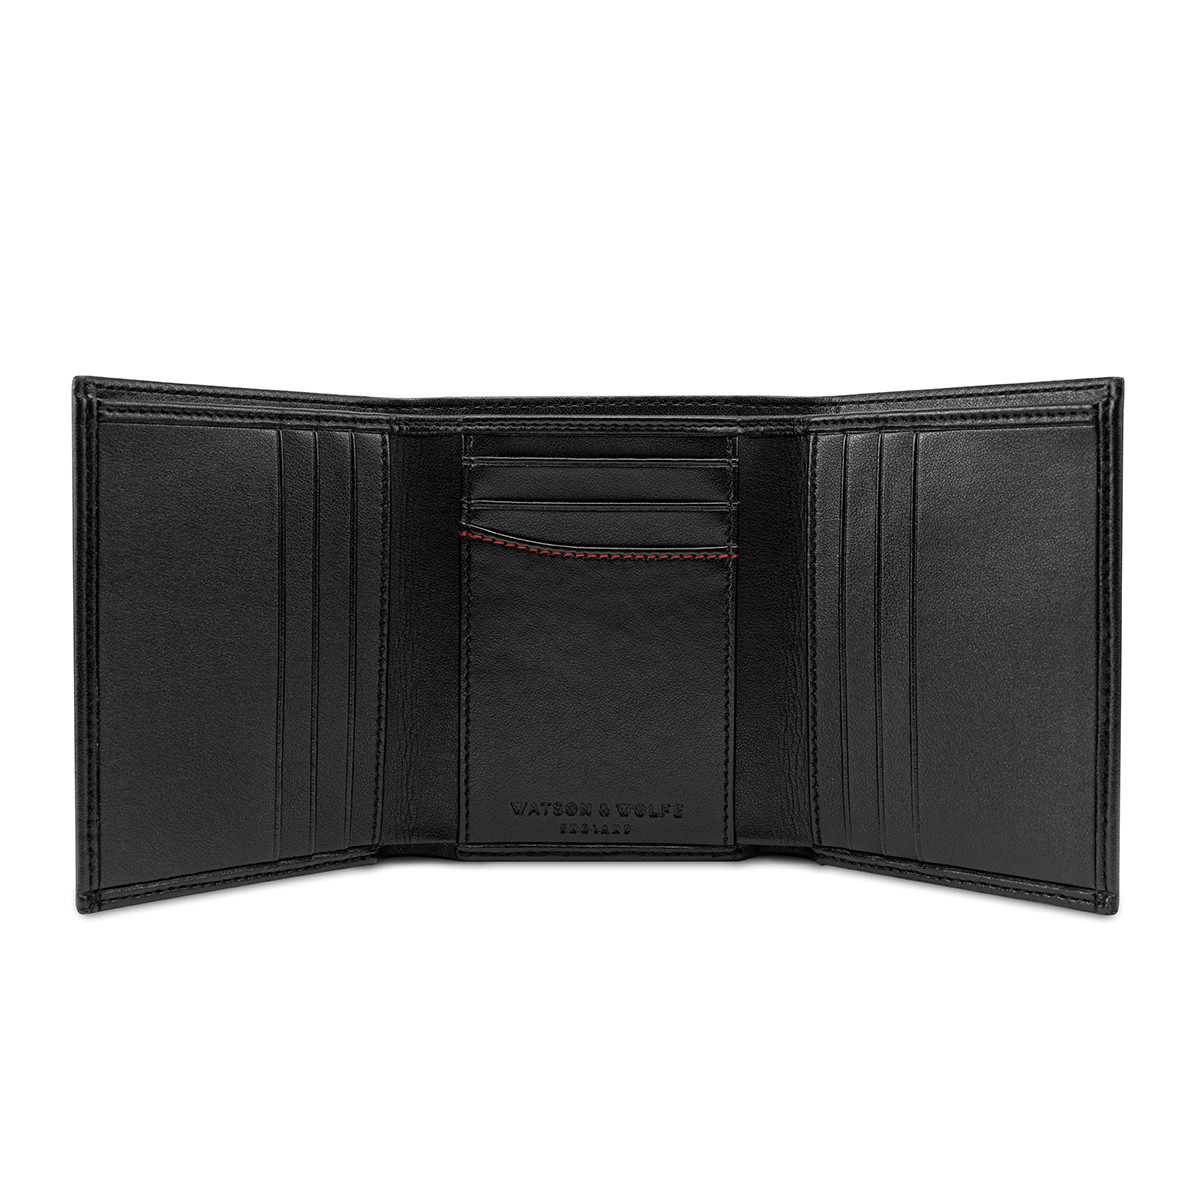 Watson & Wolfe Vegan Wallet In Black